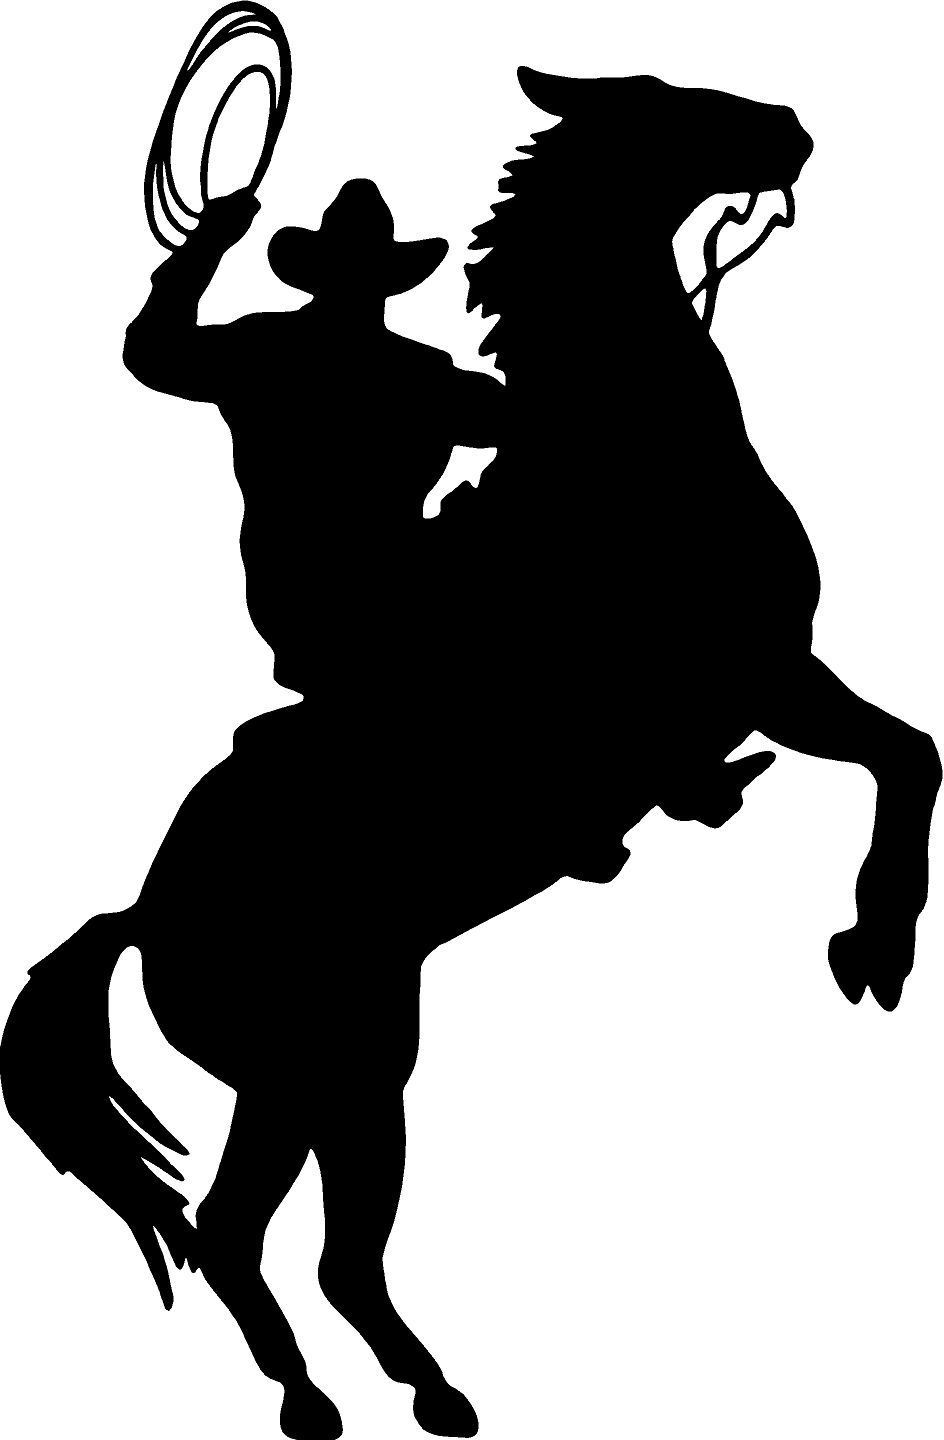 Cowboy Horse Rider Western Wall Decal Home Decor Silhouette Large 20 X 13 Romoveable Pvc Sticker Home Decoration